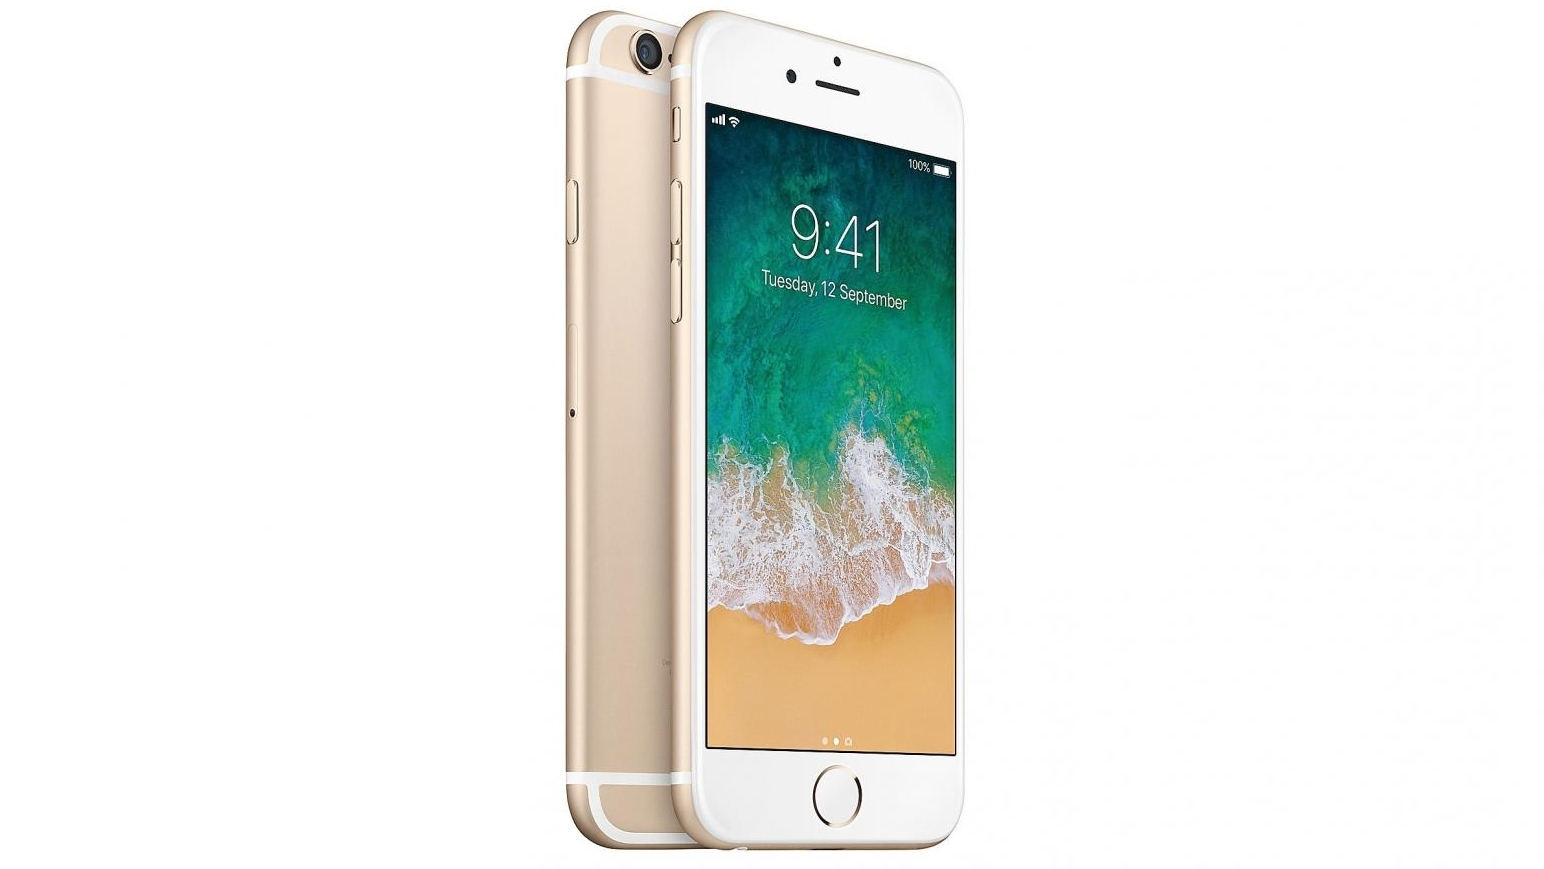 Iphone 6 32gb Vodafone Apple Iphone 6 32gb Pre Paid Smartphone Gold